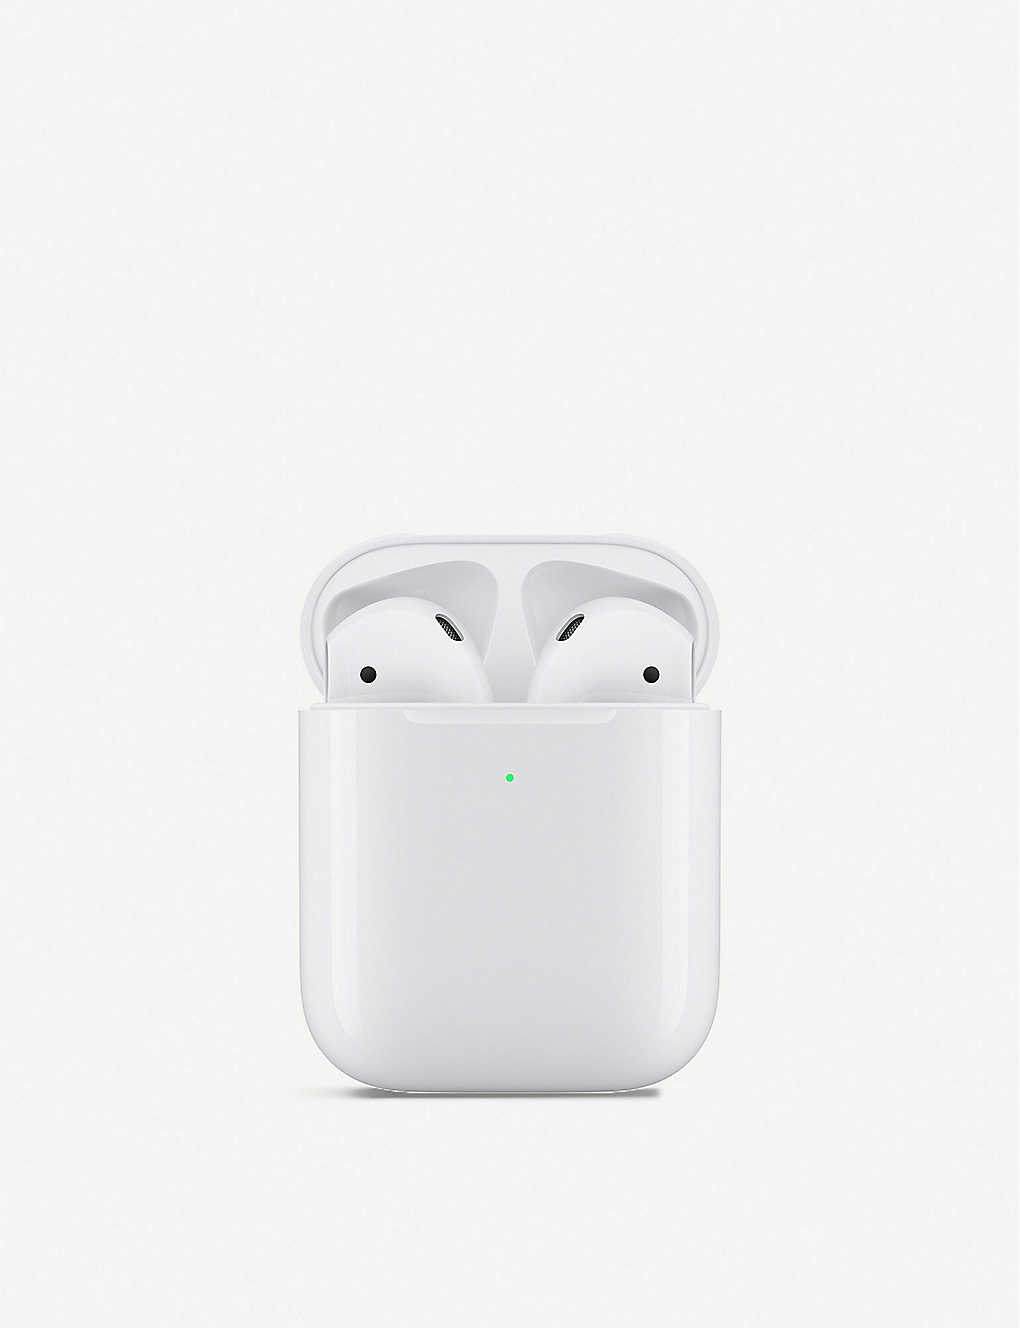 online store c23f8 49be5 AirPods with Wireless Charging Case